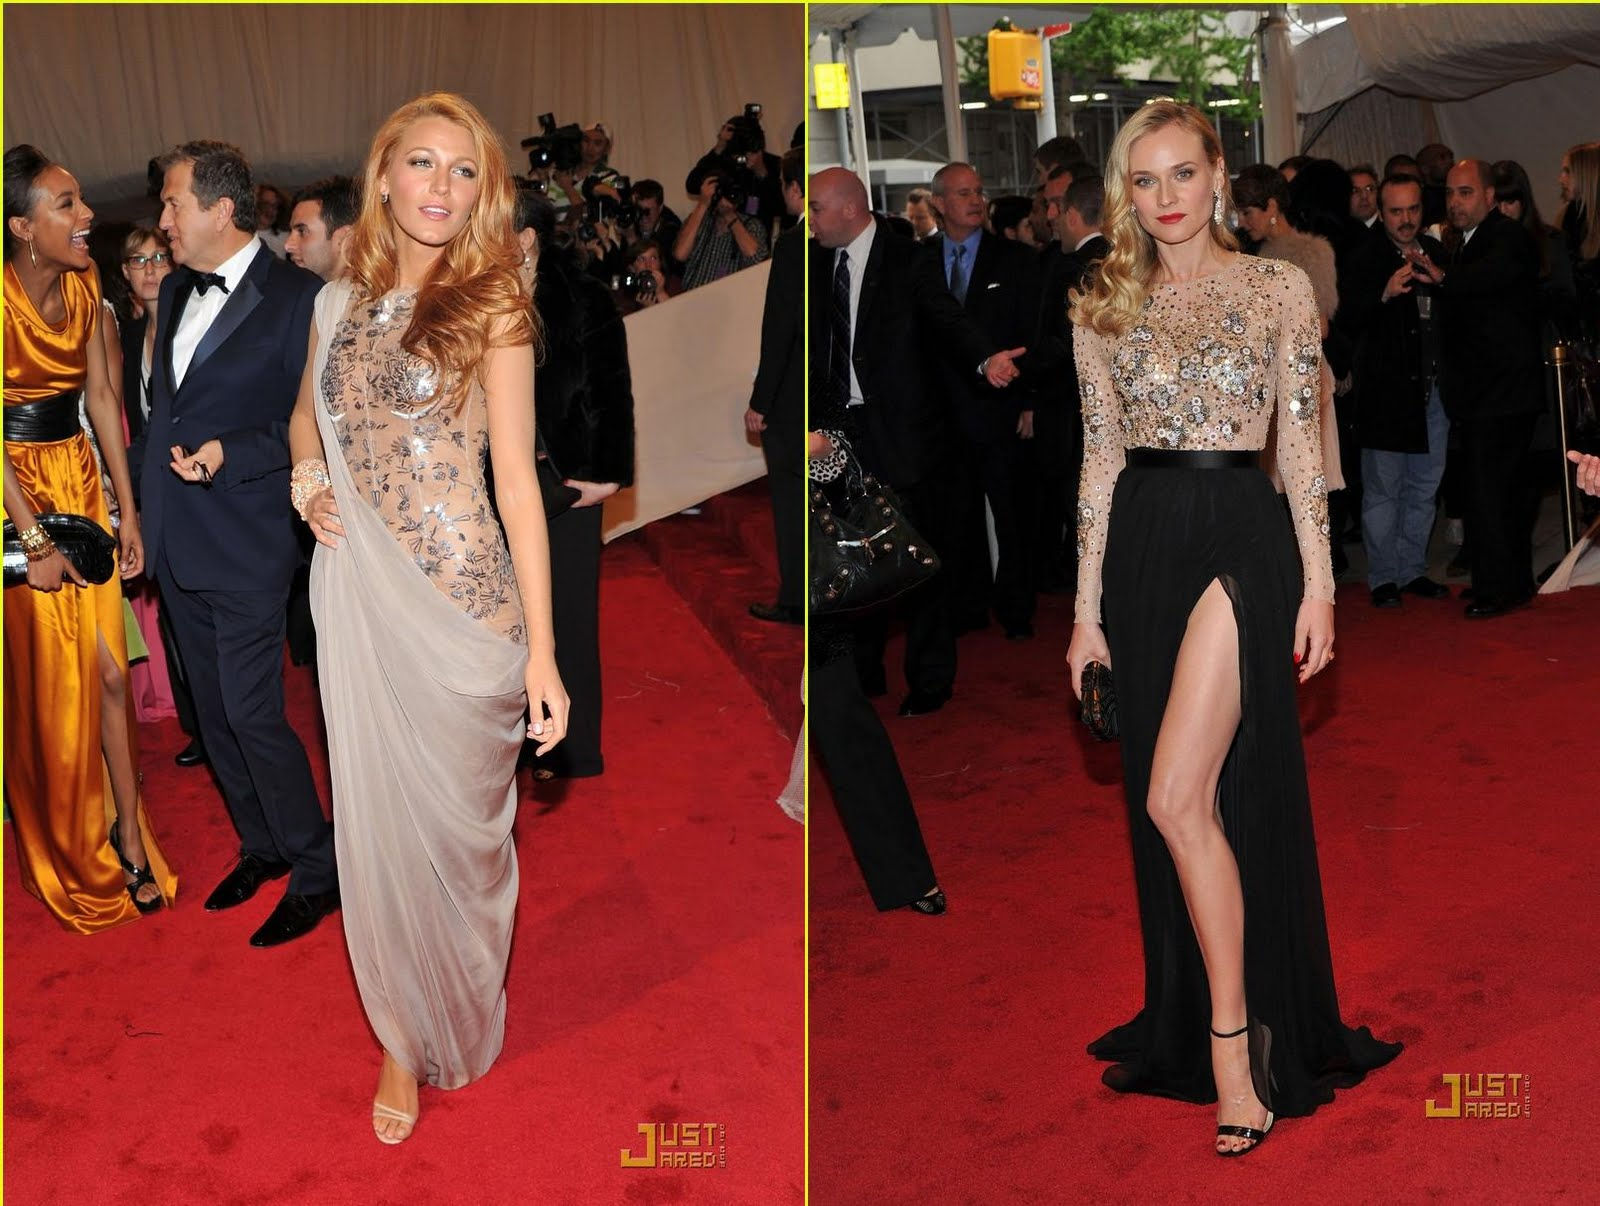 http://2.bp.blogspot.com/-OGX4ygdhLJc/TcBB3ZiqYwI/AAAAAAAABiI/xYkhWvGV5h8/s1600/blake-lively-diane%2Bkruger.jpg